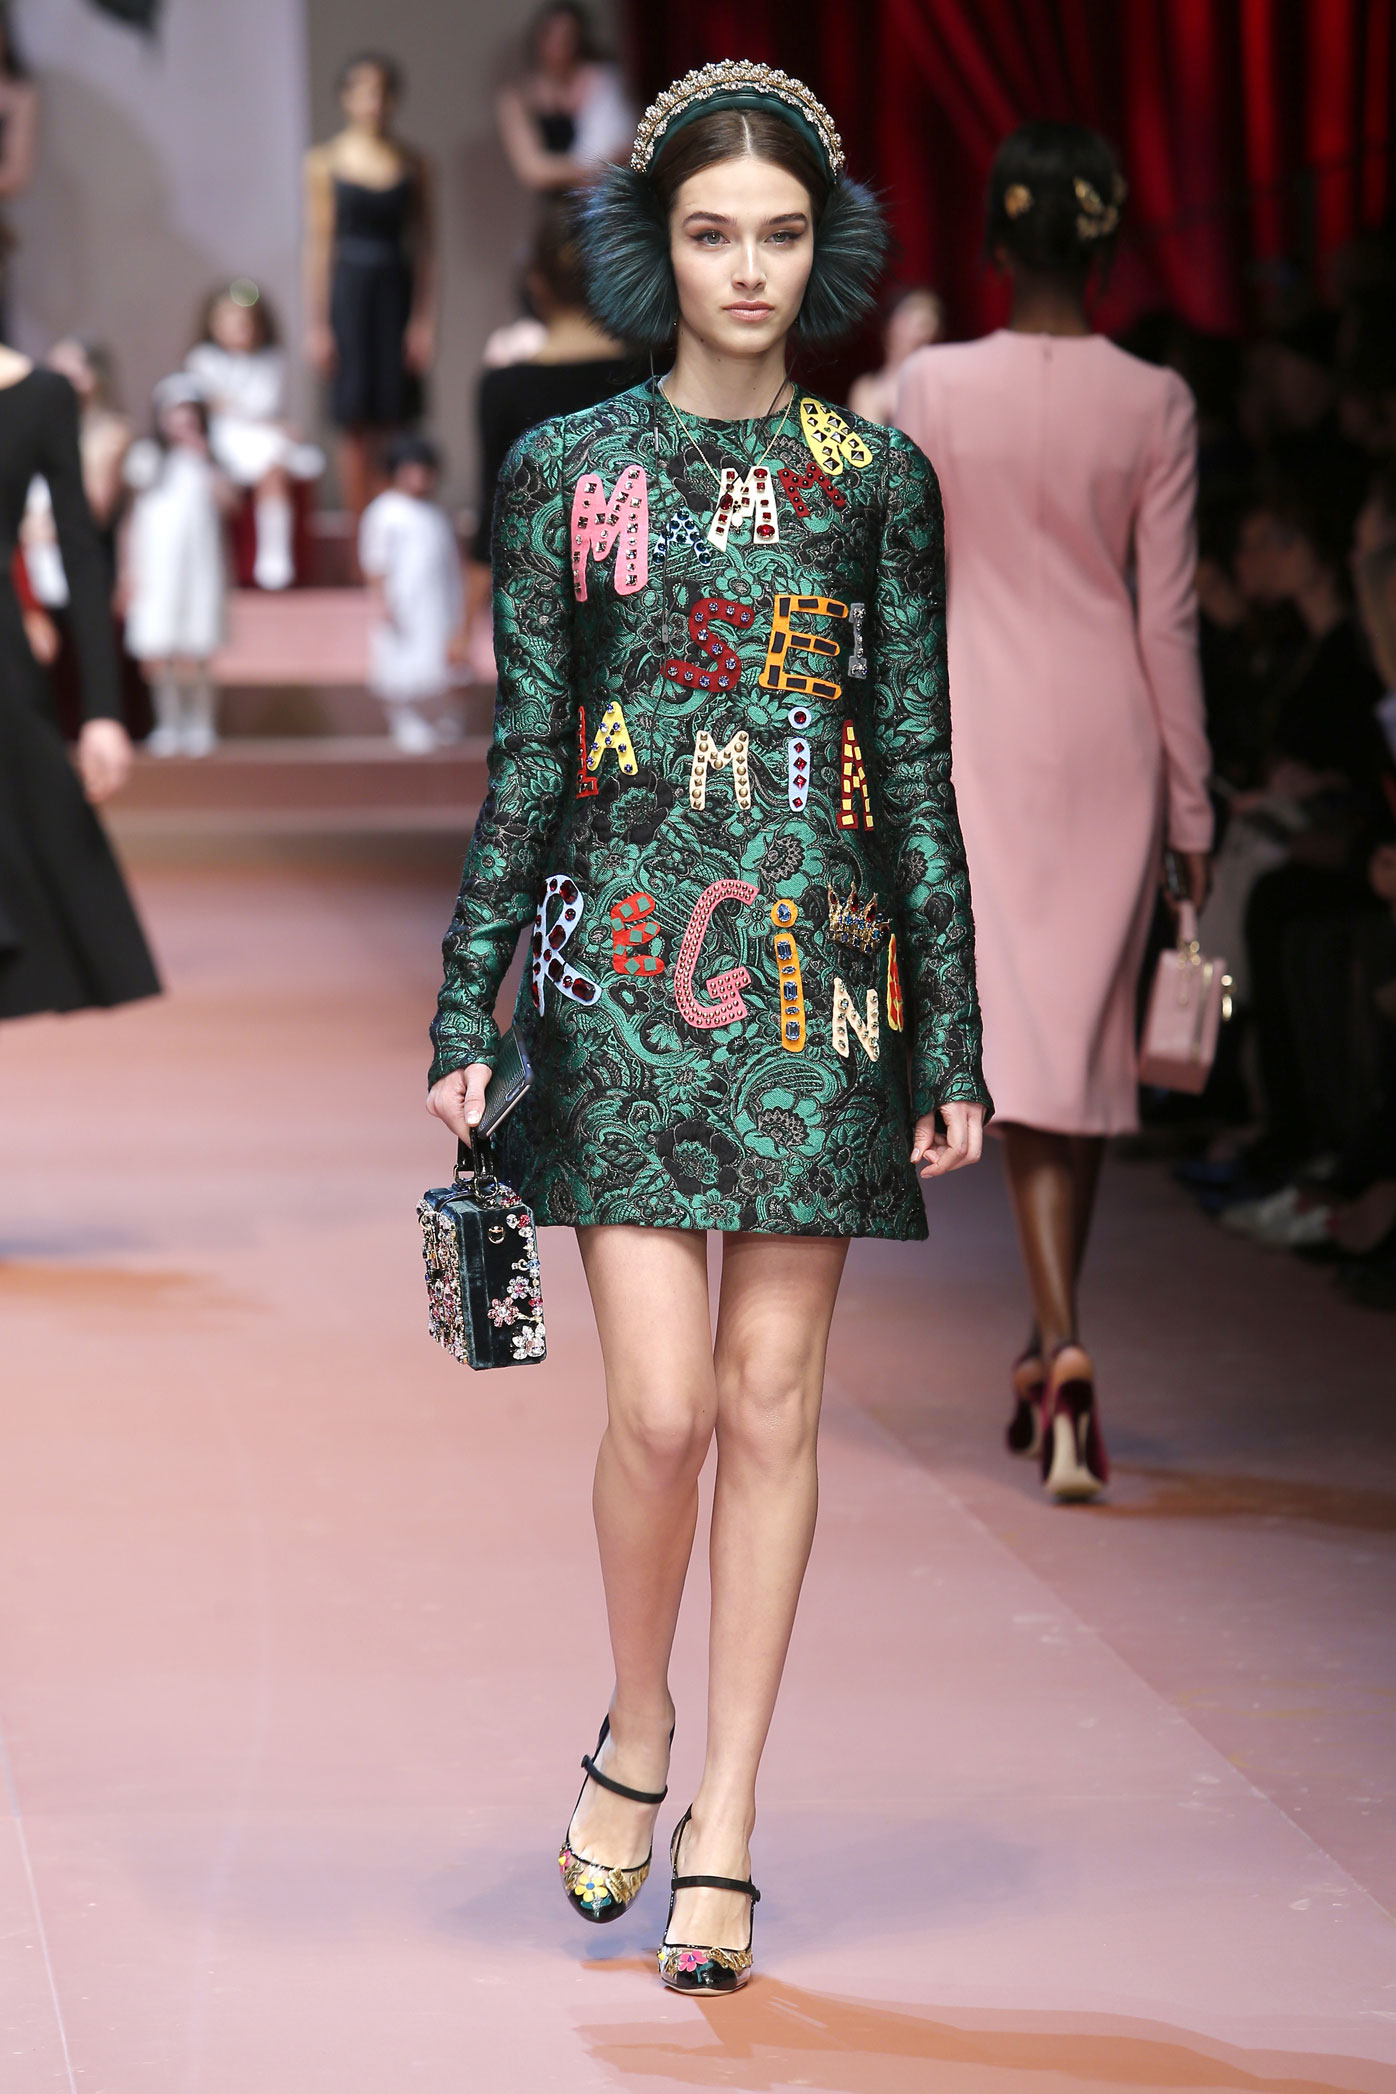 Milan Fashion Week Fall Winter 2015 Dolce & Gabbana event